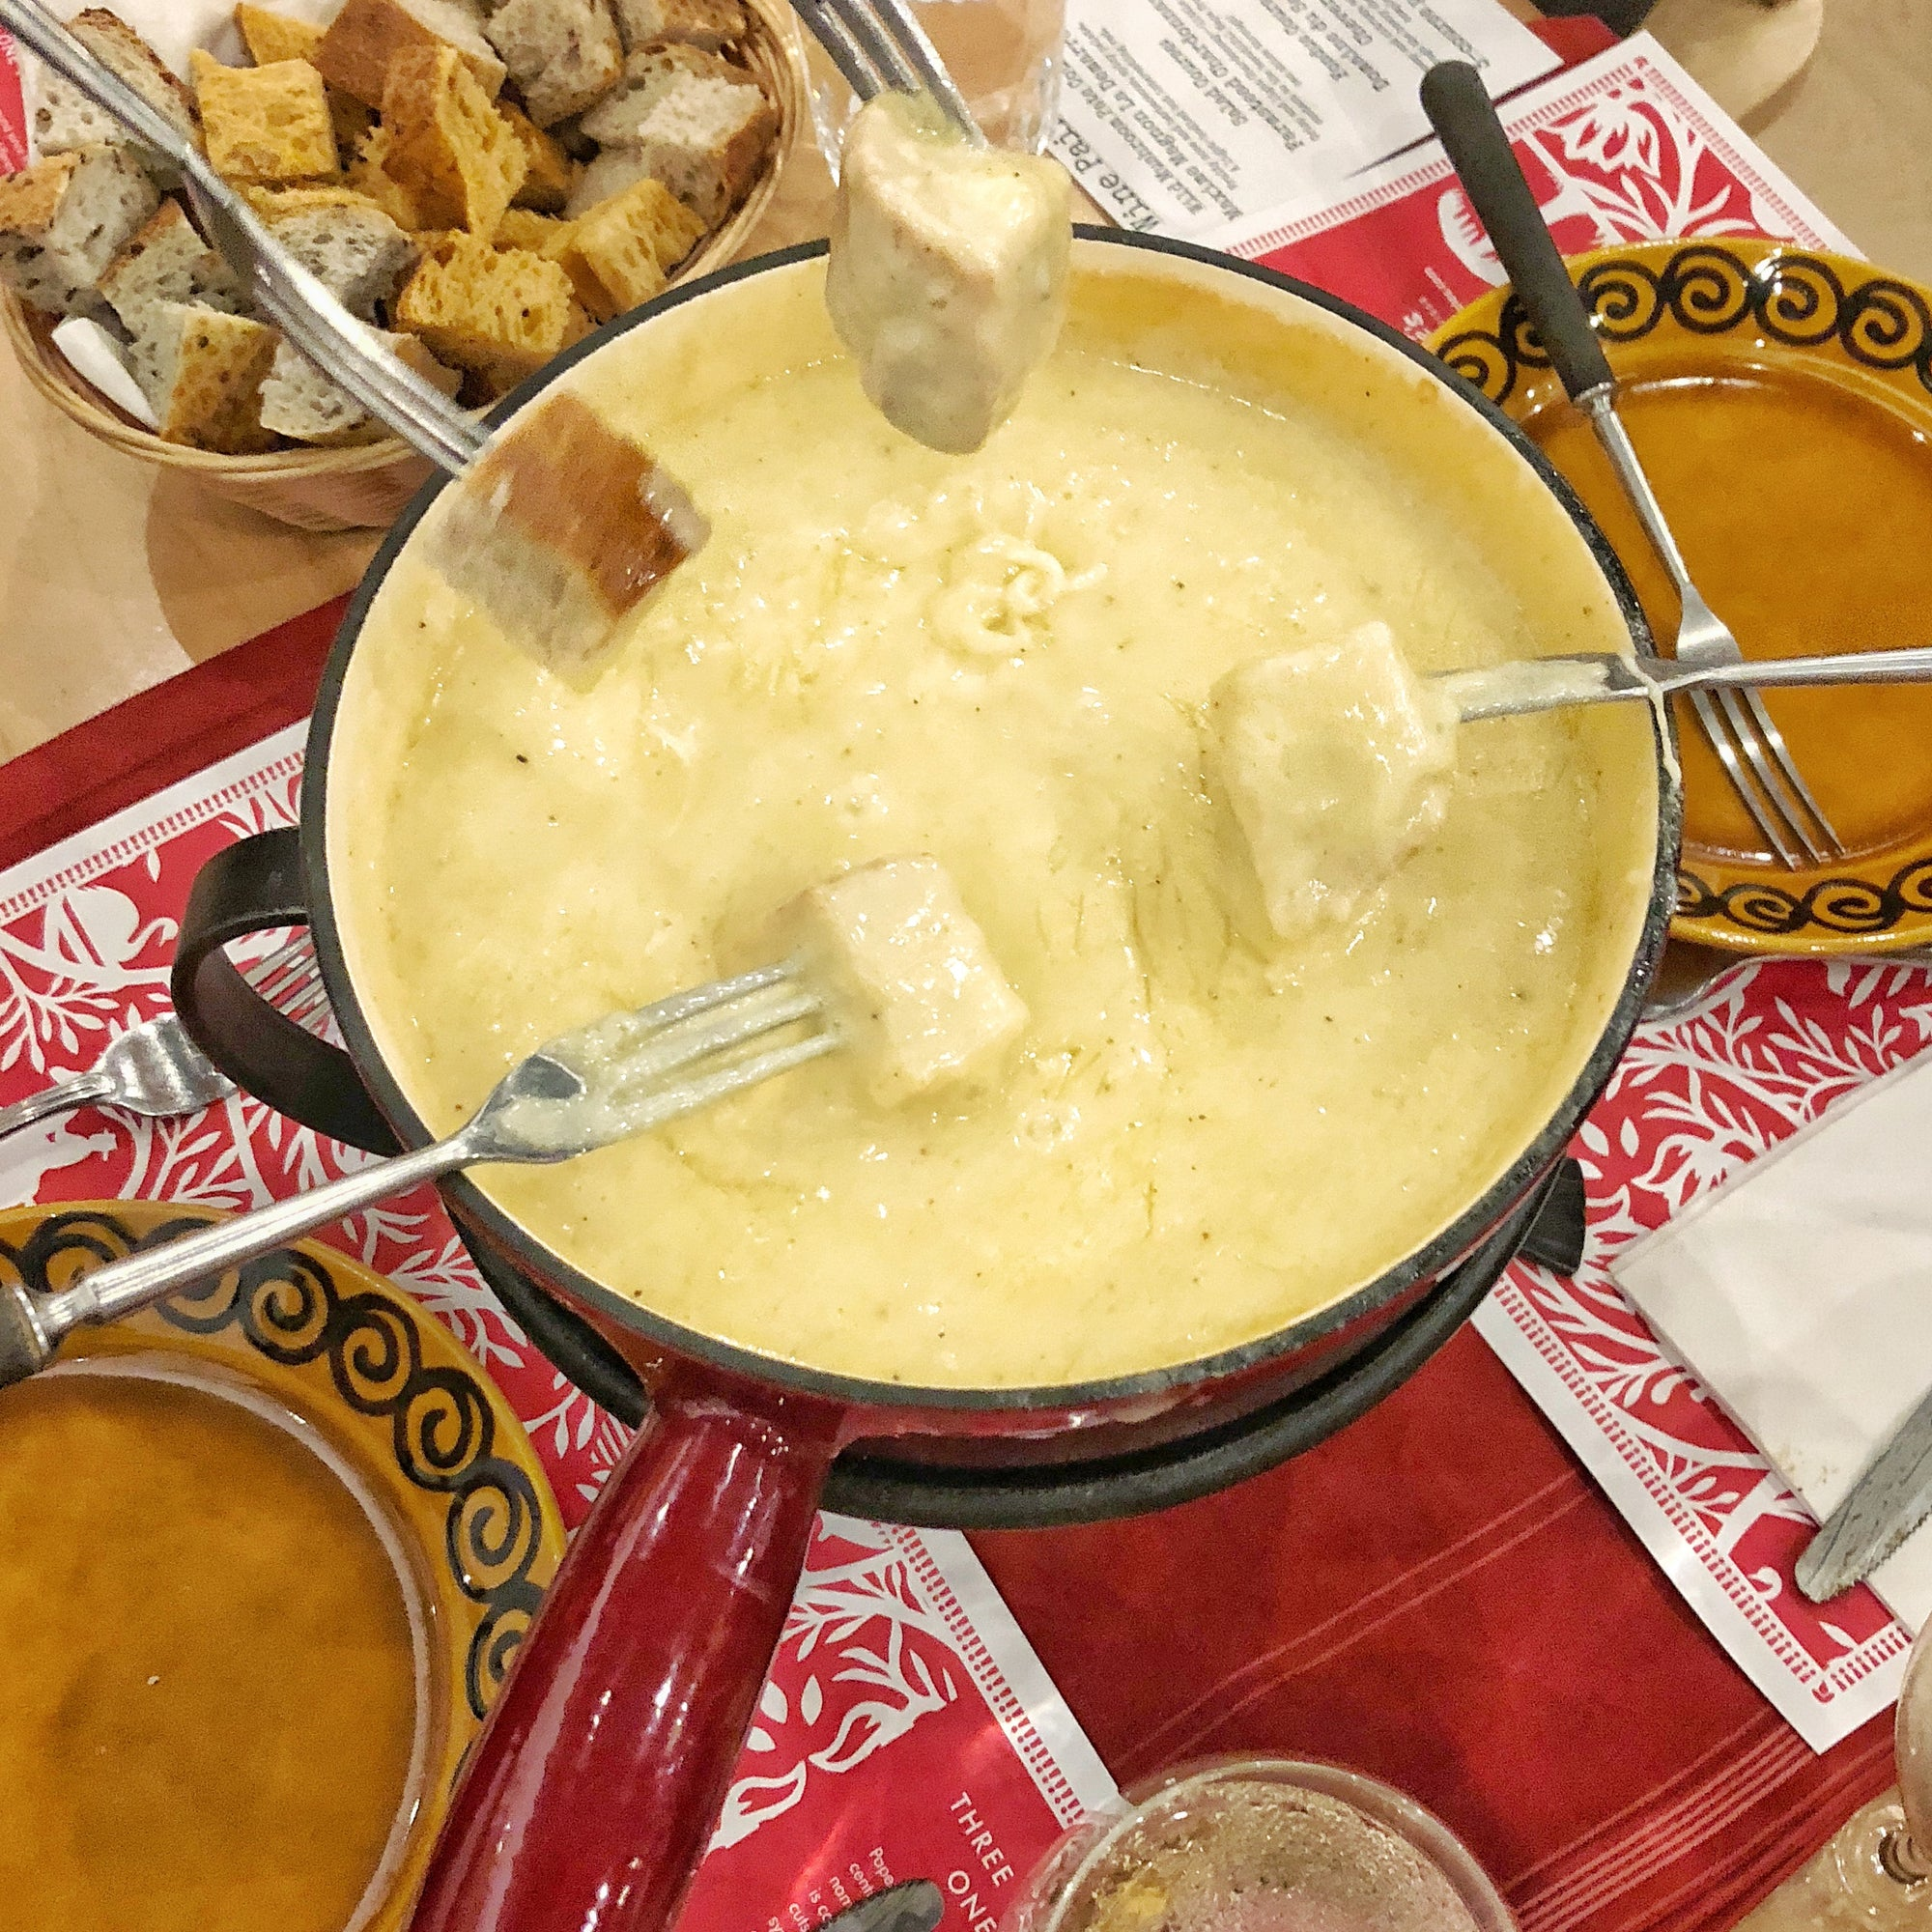 Cheese Fondue Kit - Swiss Cheese Fondue + Bread